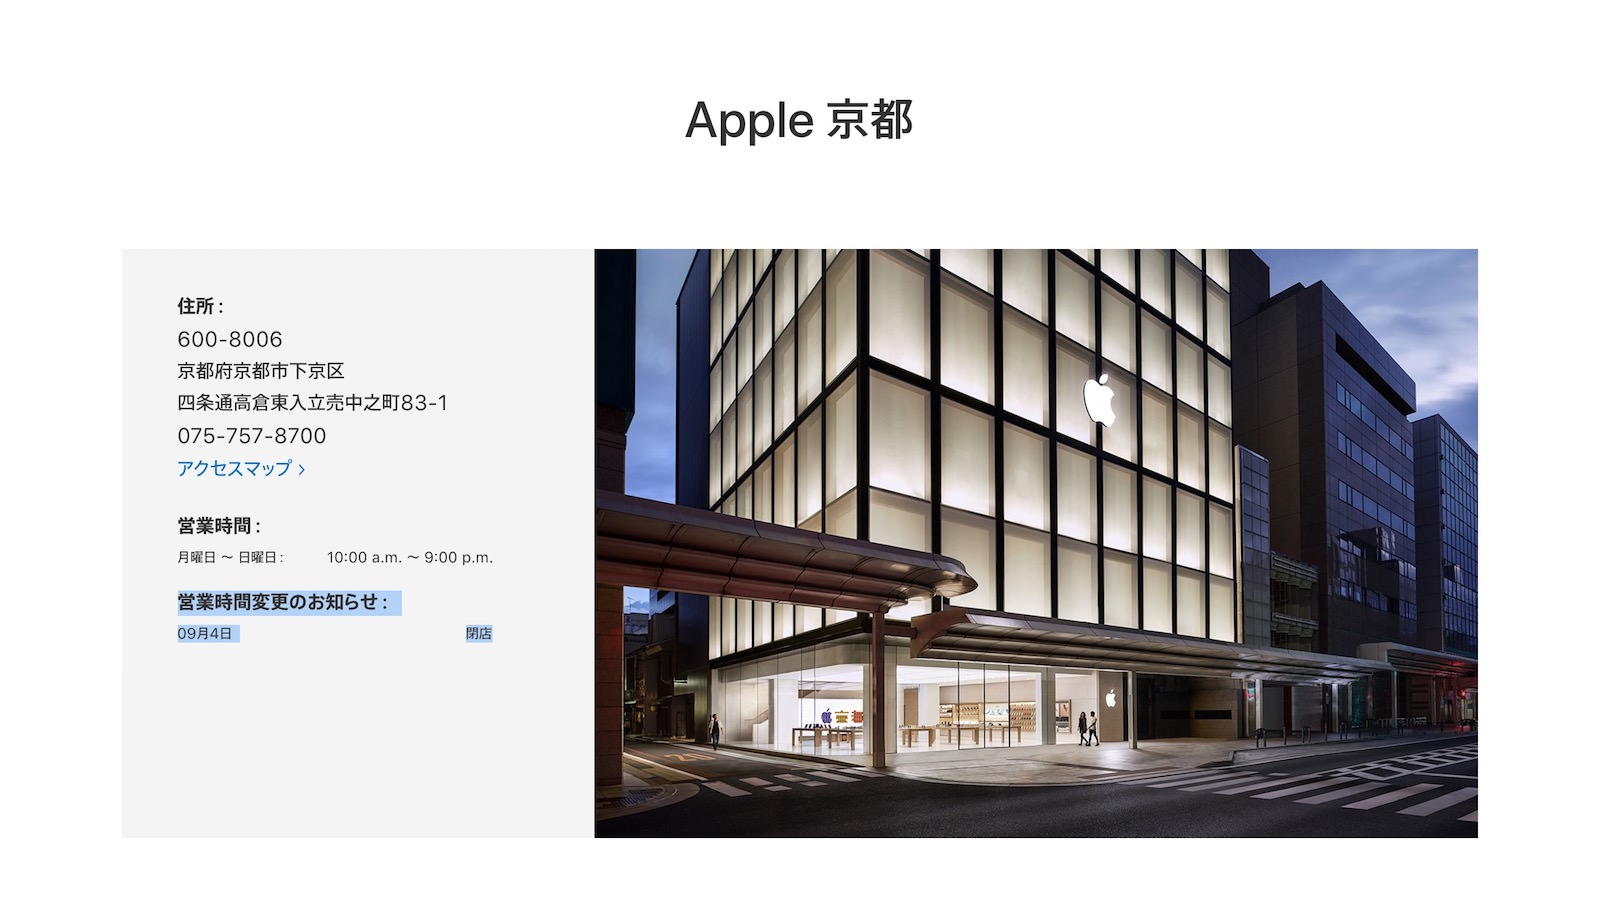 Apple-Store-Closed-for-Typhoon.jpg